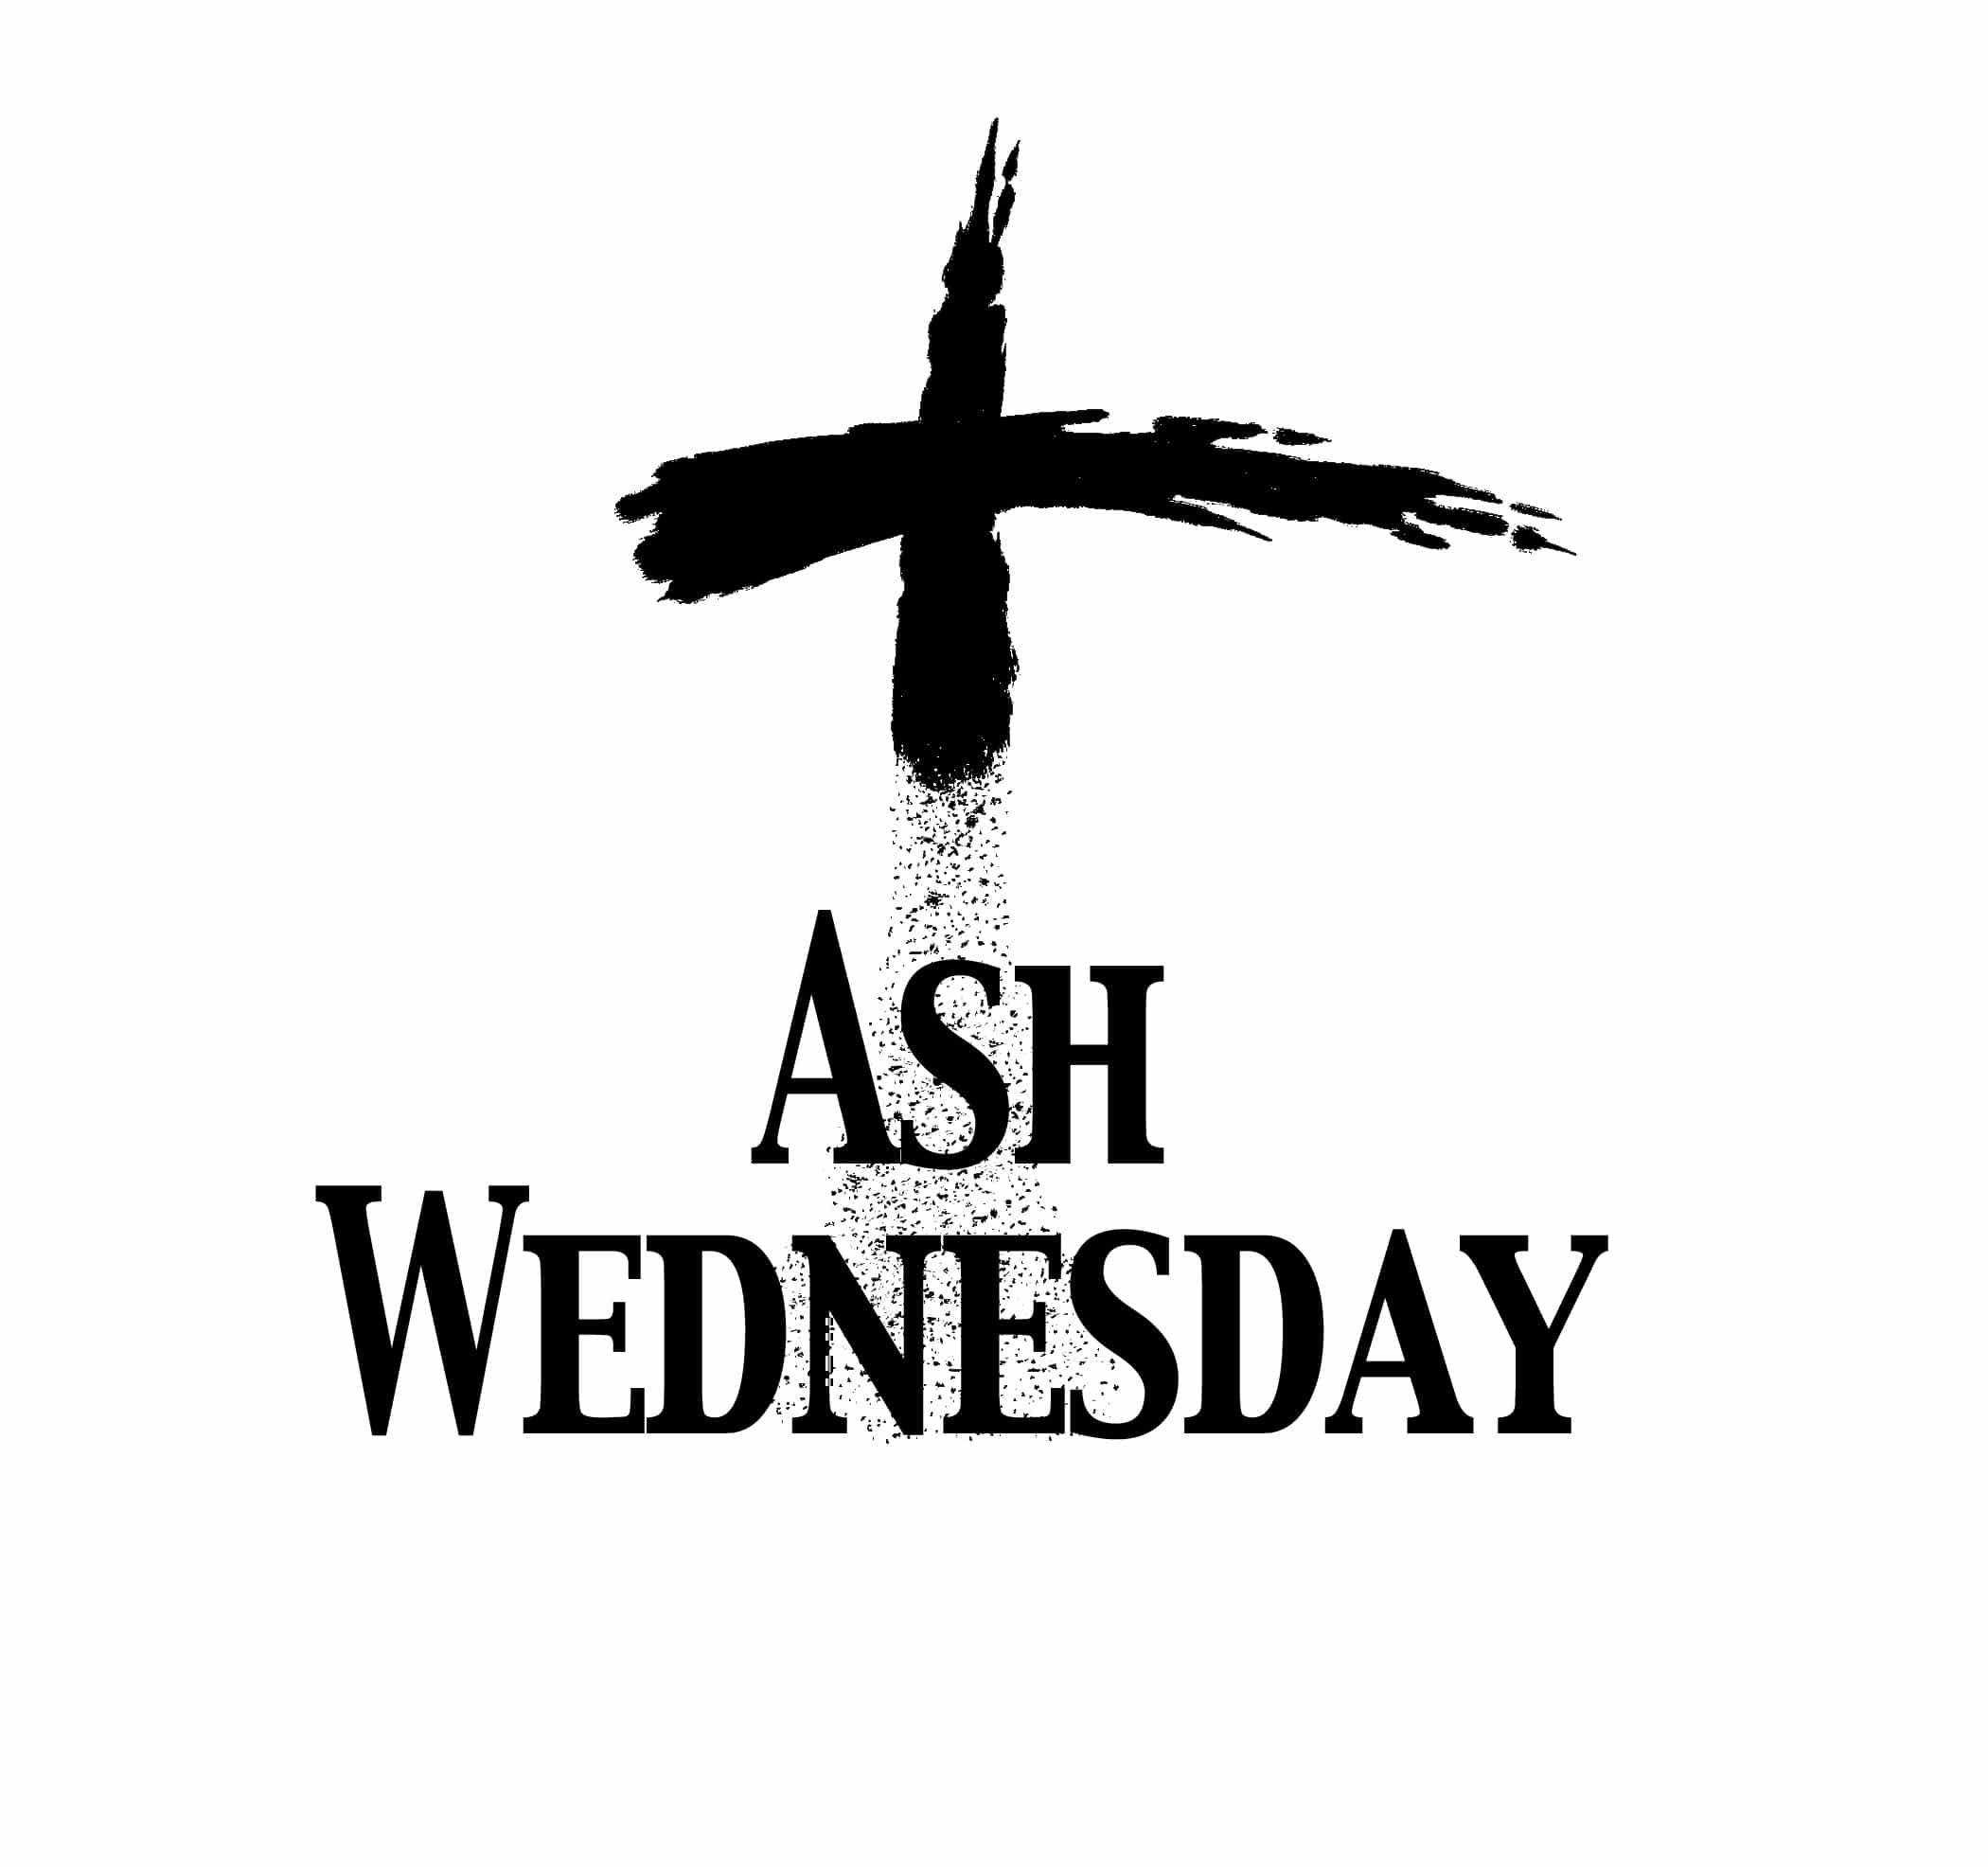 2018 Ash Wednesday Wallpapers